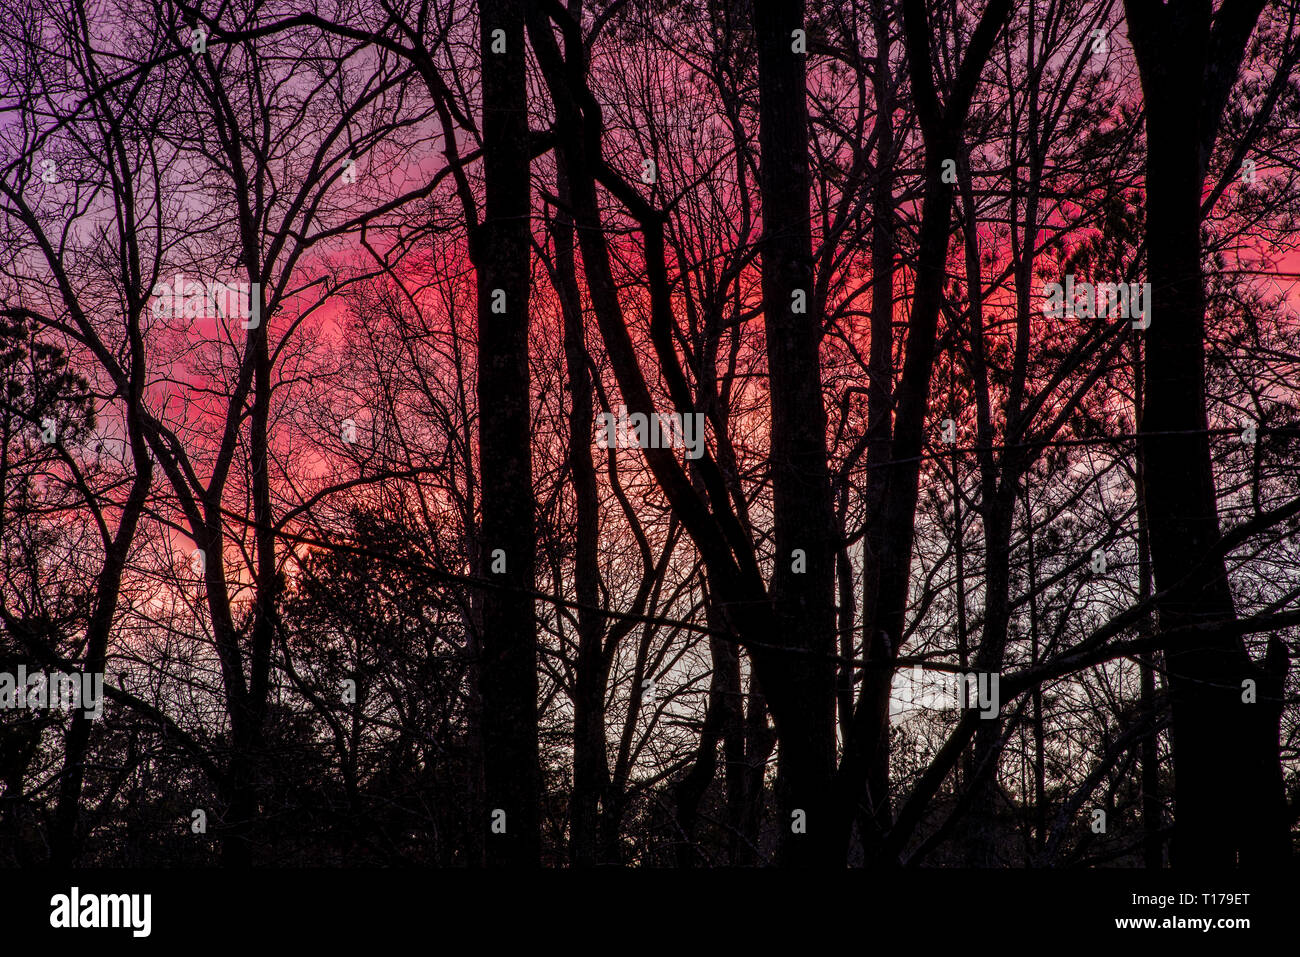 Colorful sunset with silhouettes of trees in the foreground - Stock Image